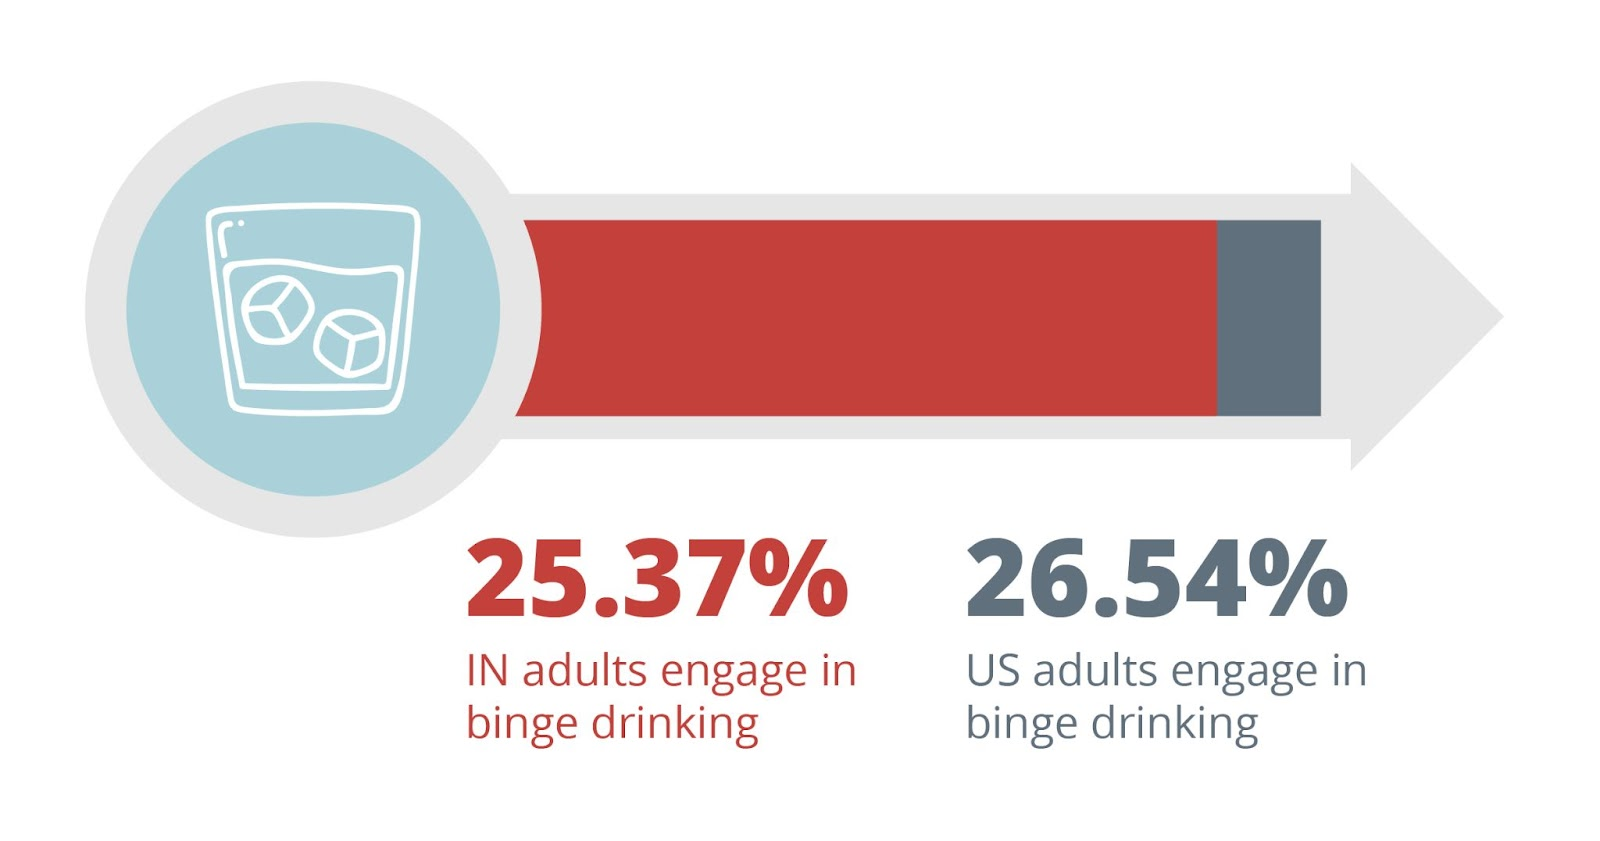 25.37 indiana adults engage in binge drinking. 26.54 american adults engage in binge drinking